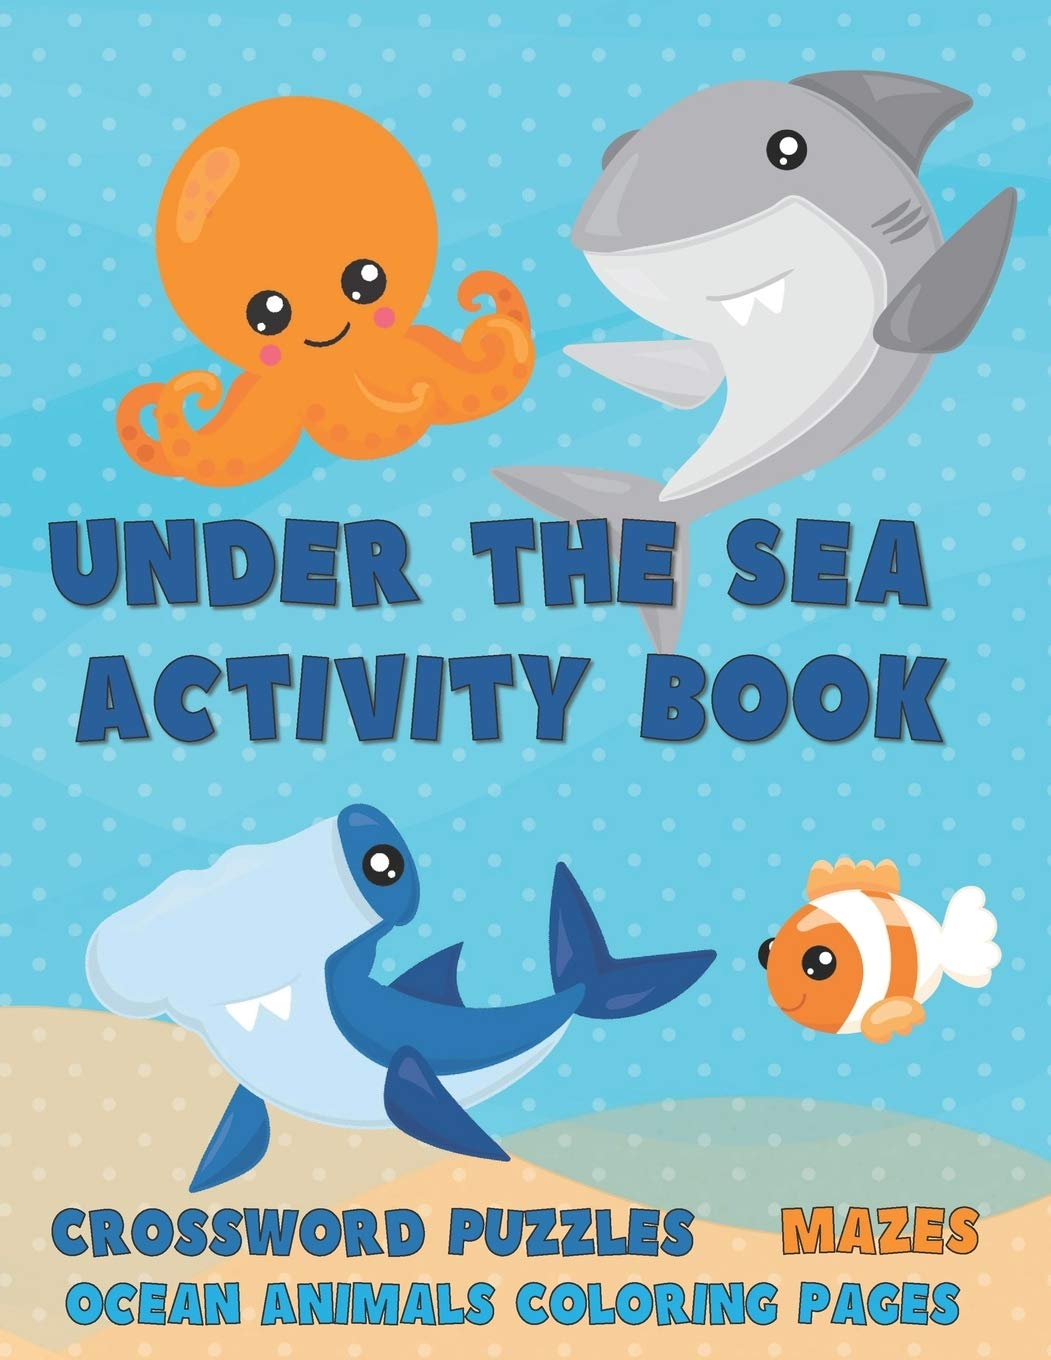 Under The Sea Activity Book Crossword Puzzles Mazes And Ocean Animals Coloring Pages Days Doodles For 9798651002689 Amazon Com Books